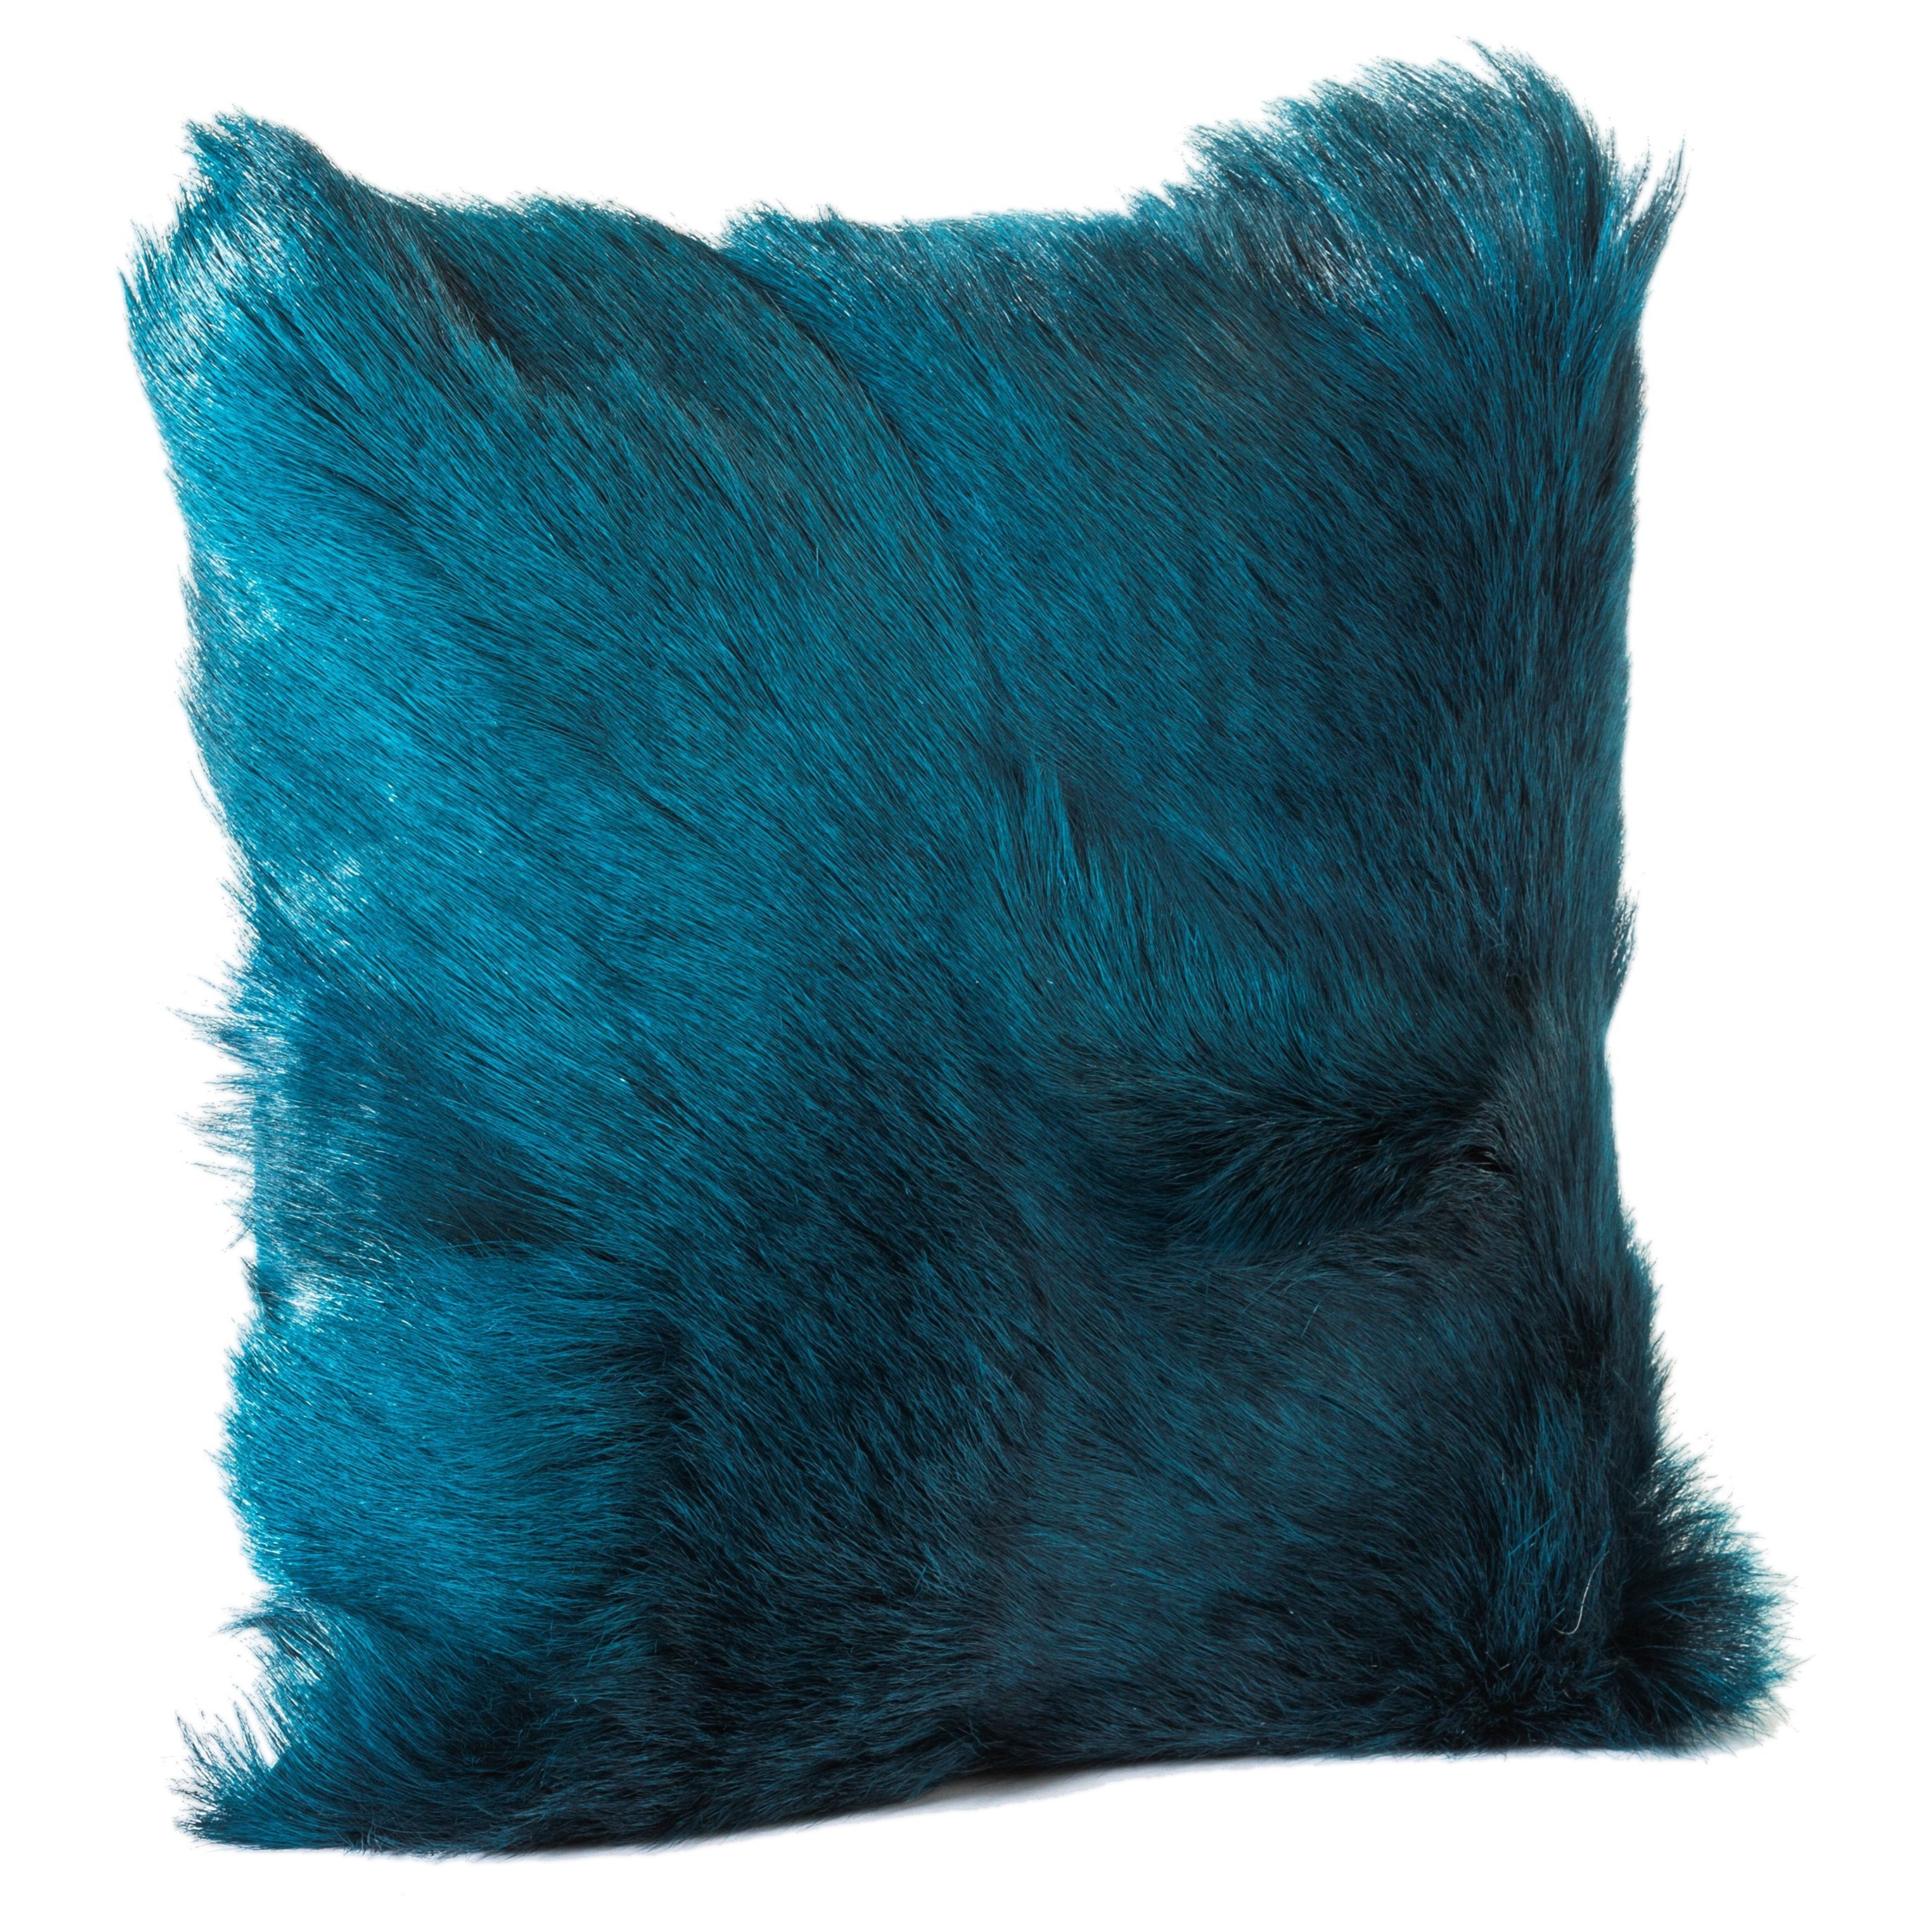 Pillows and Throws Goat Fur Pillow Teal by Moe's Home Collection at Stoney Creek Furniture